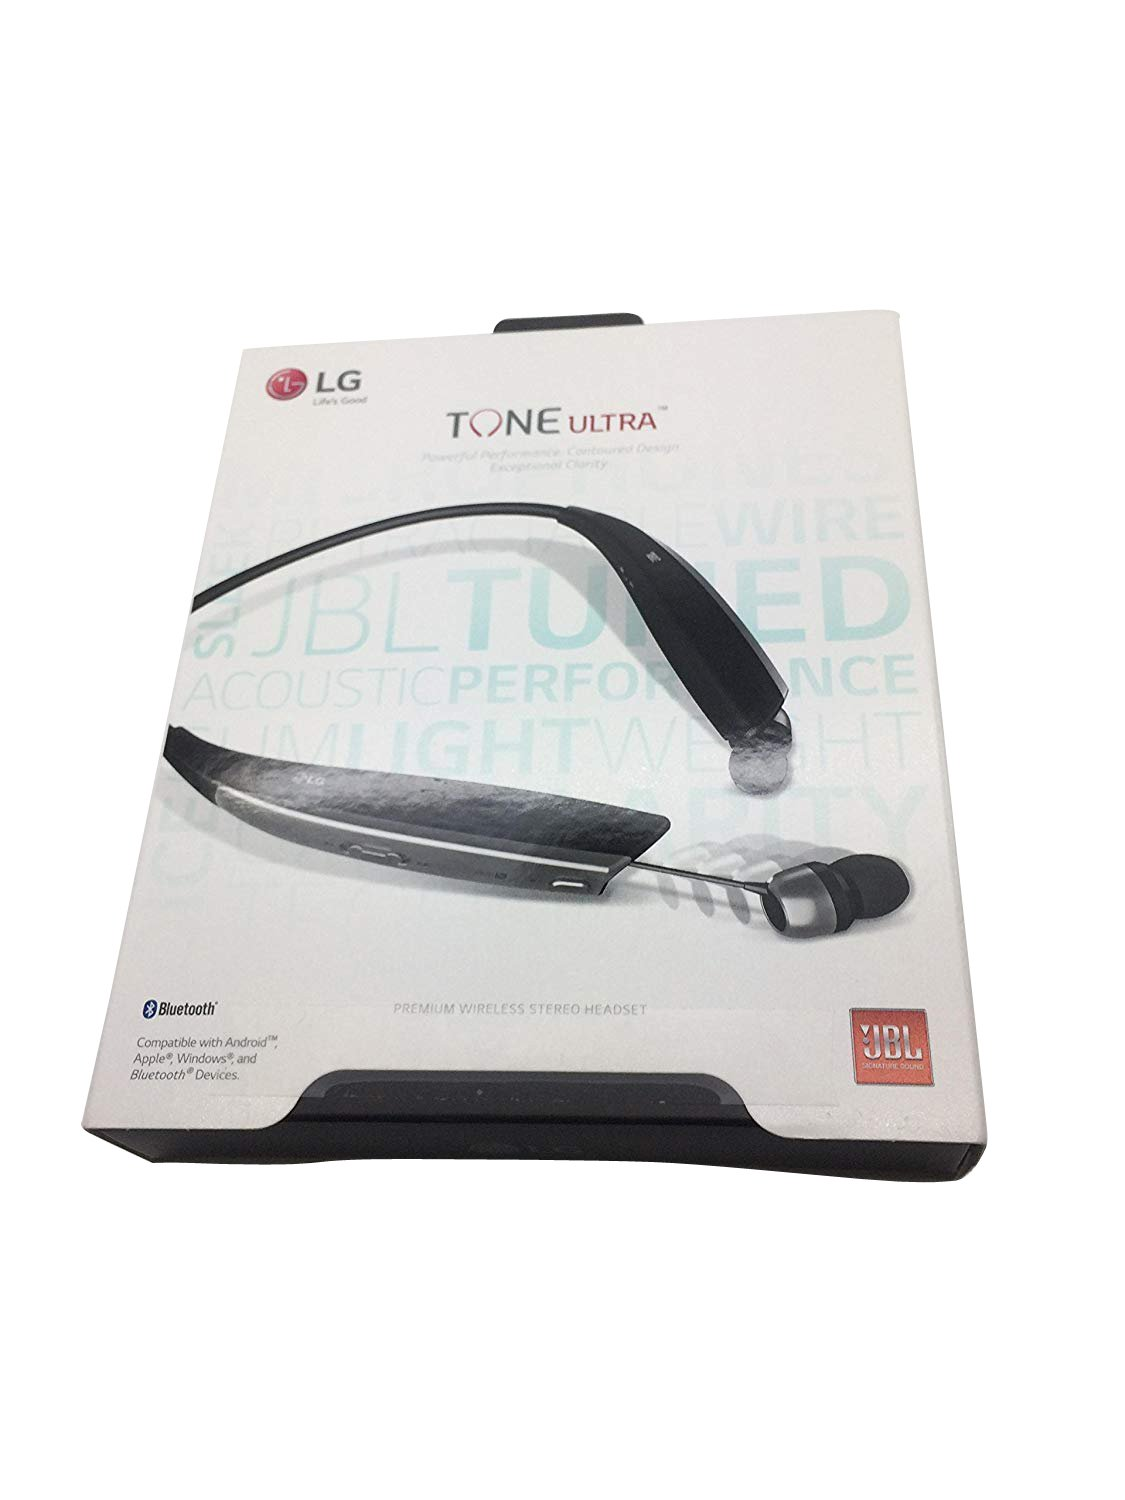 6f20e4cd926 Amazon.com: LG Tone Ultra HBS-820 Bluetooth Wireless Stereo Headset -  Black: Cell Phones & Accessories